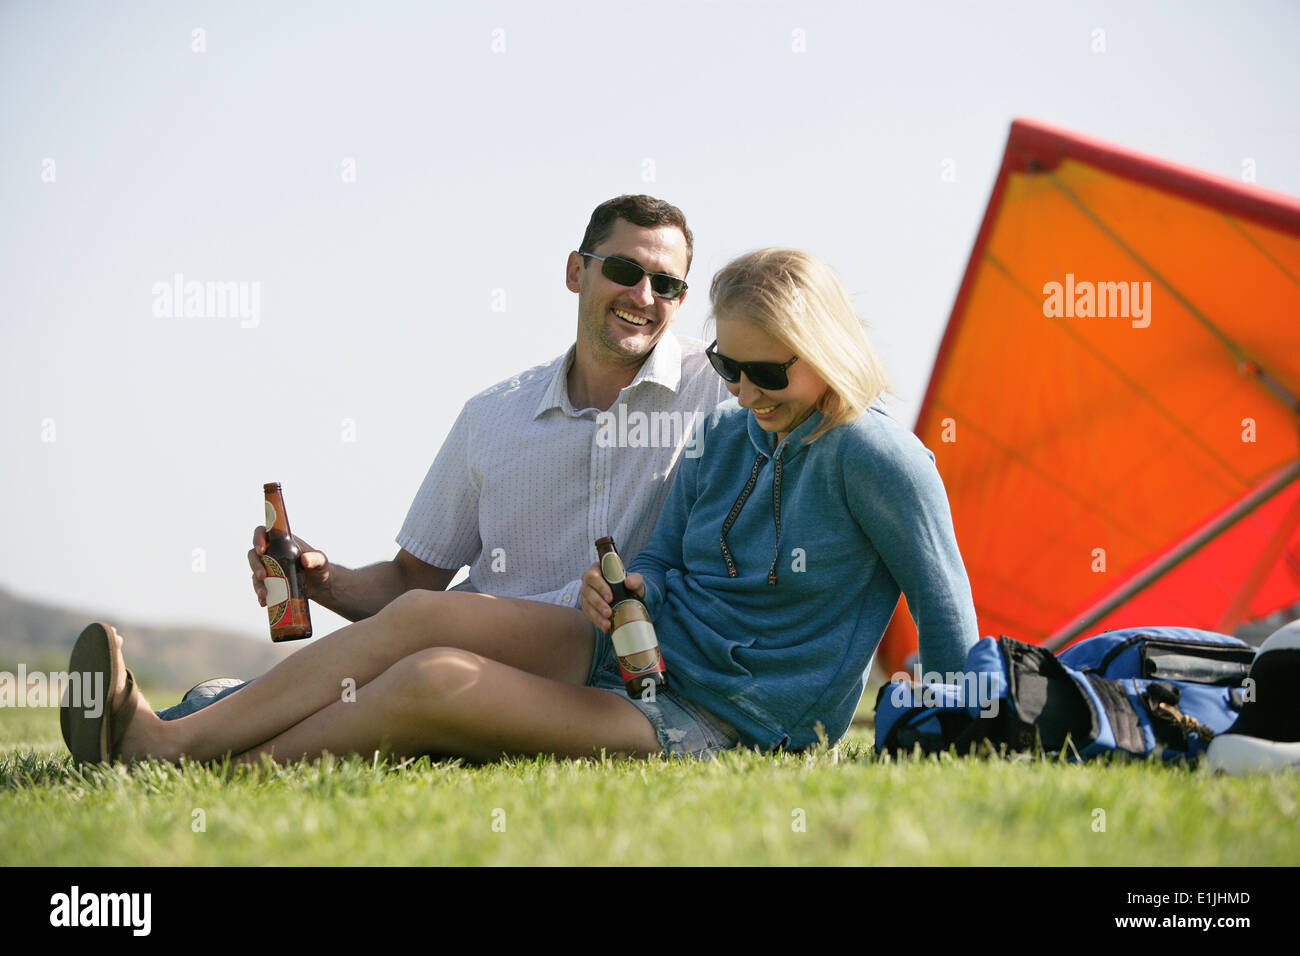 Couple relaxing with beer, hang glider in background - Stock Image